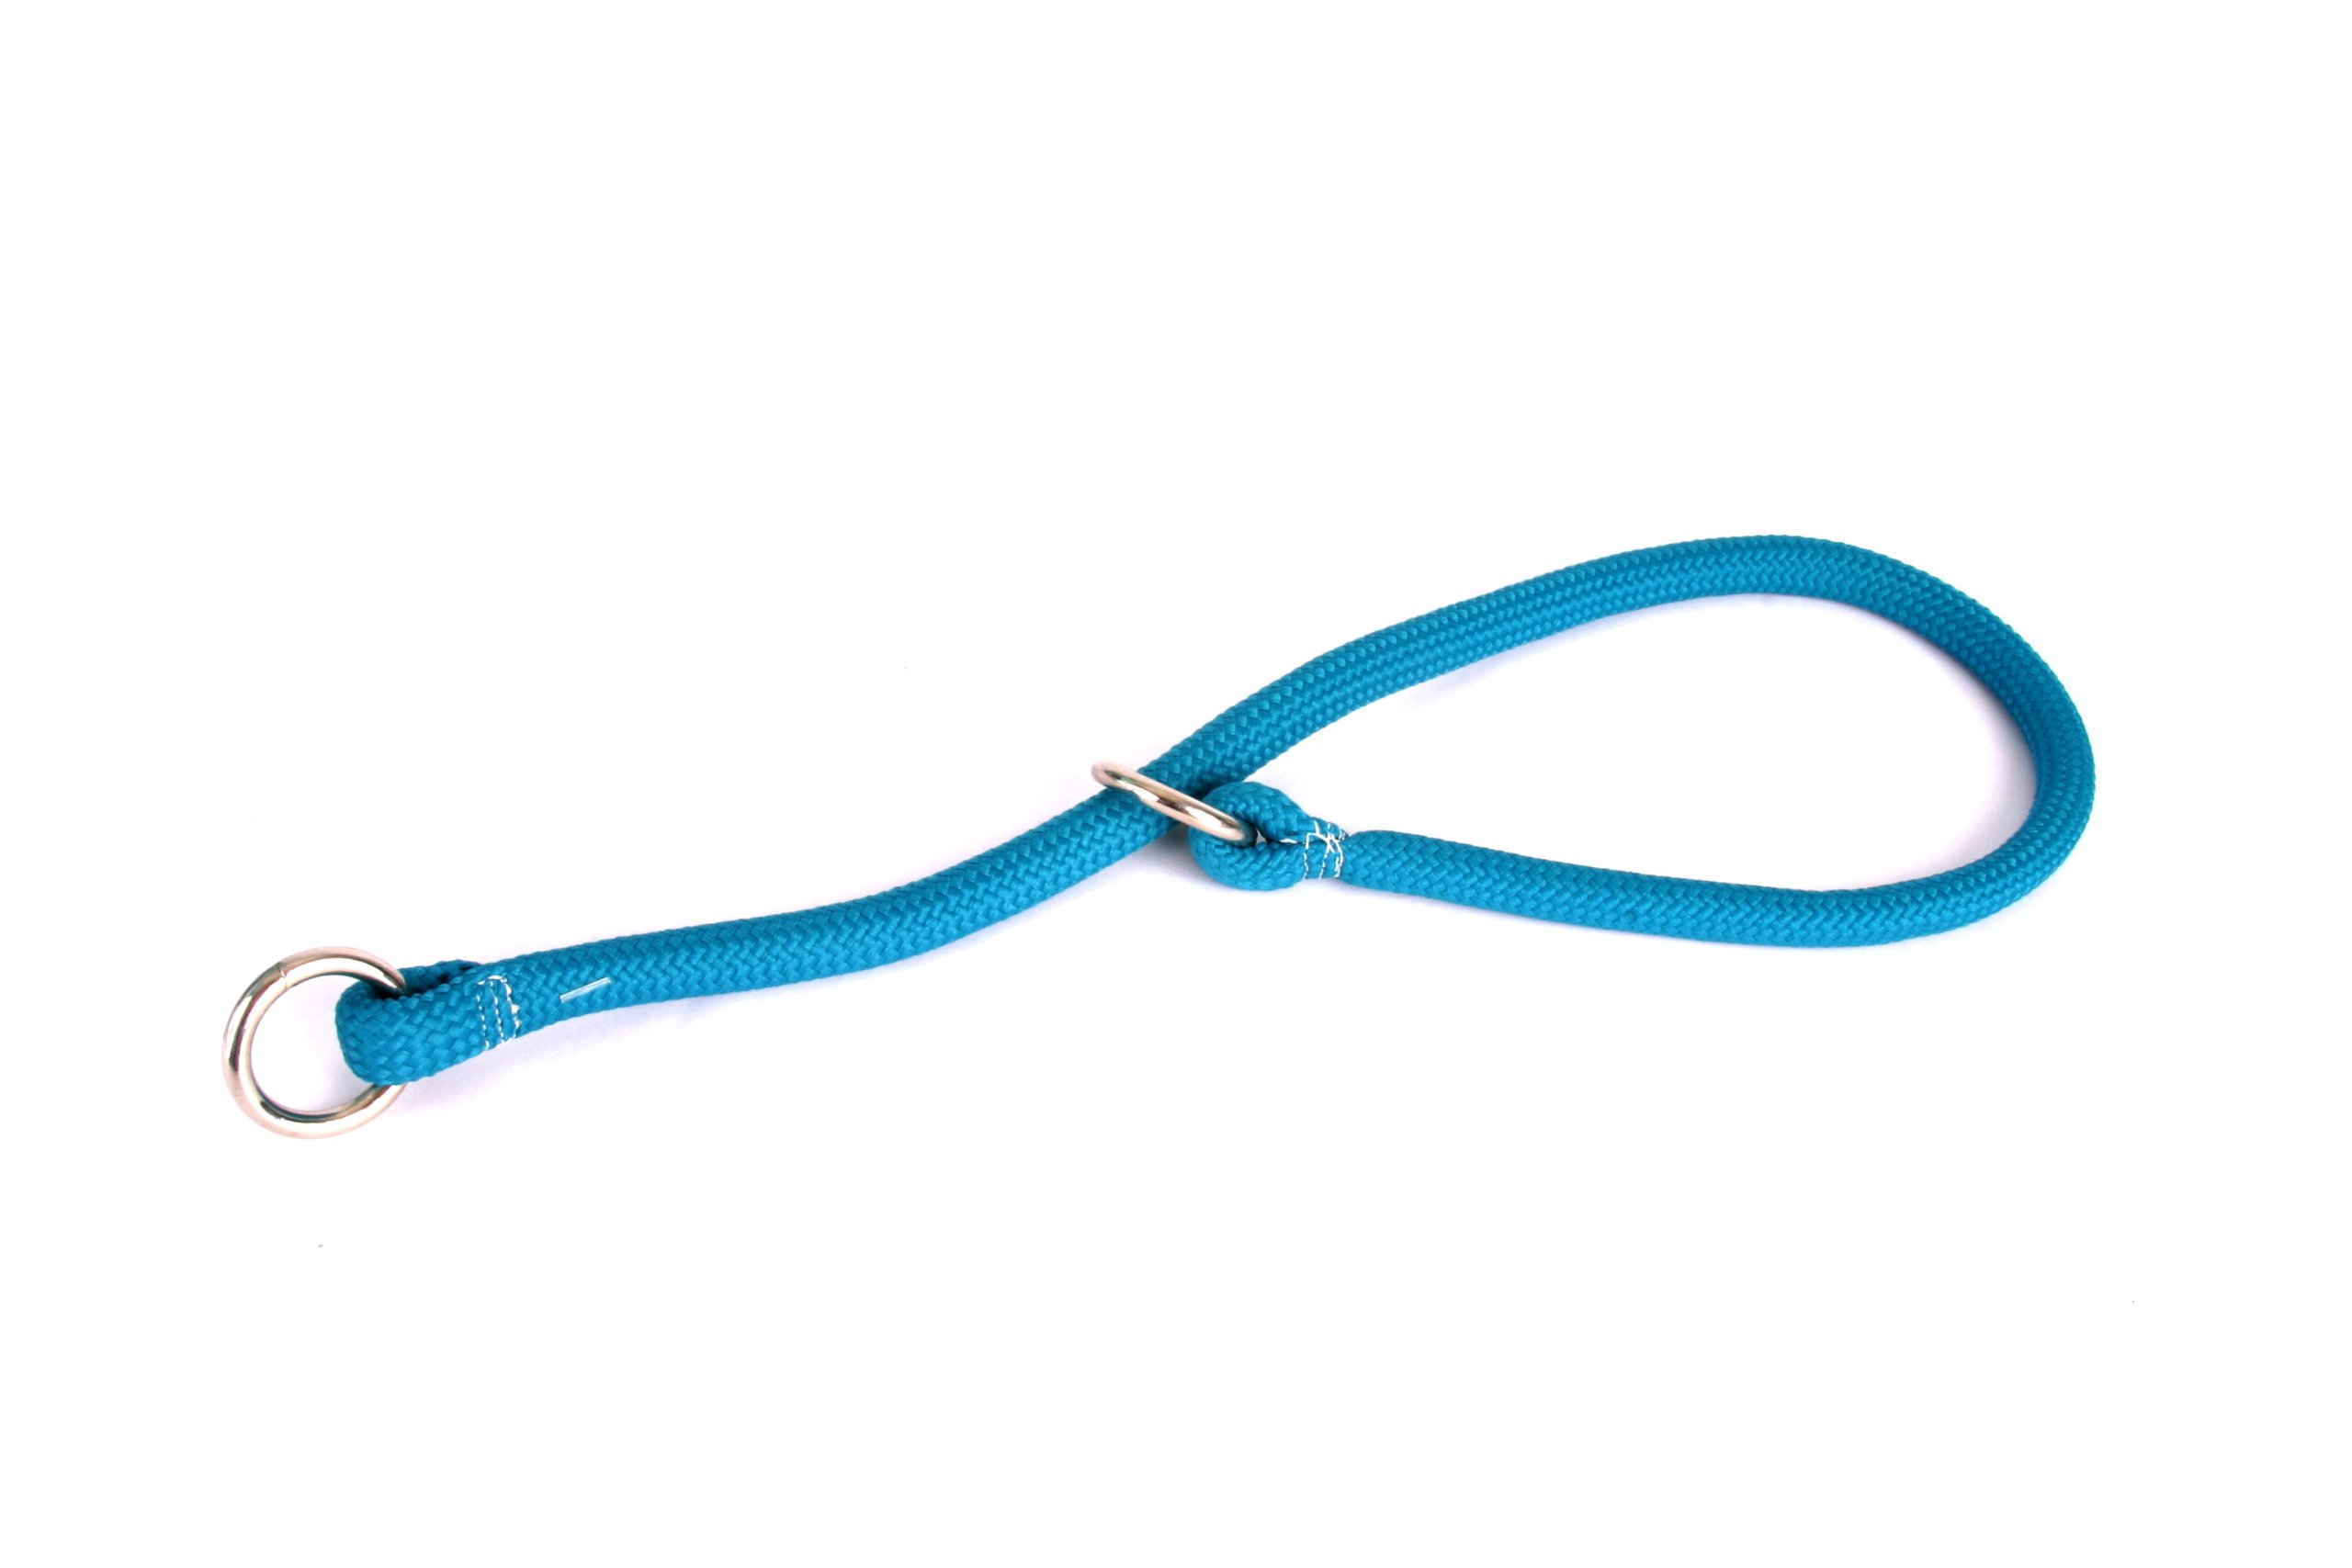 Yellow Dog Design Braided Training Collar for Dogs, 24-Inch, Teal